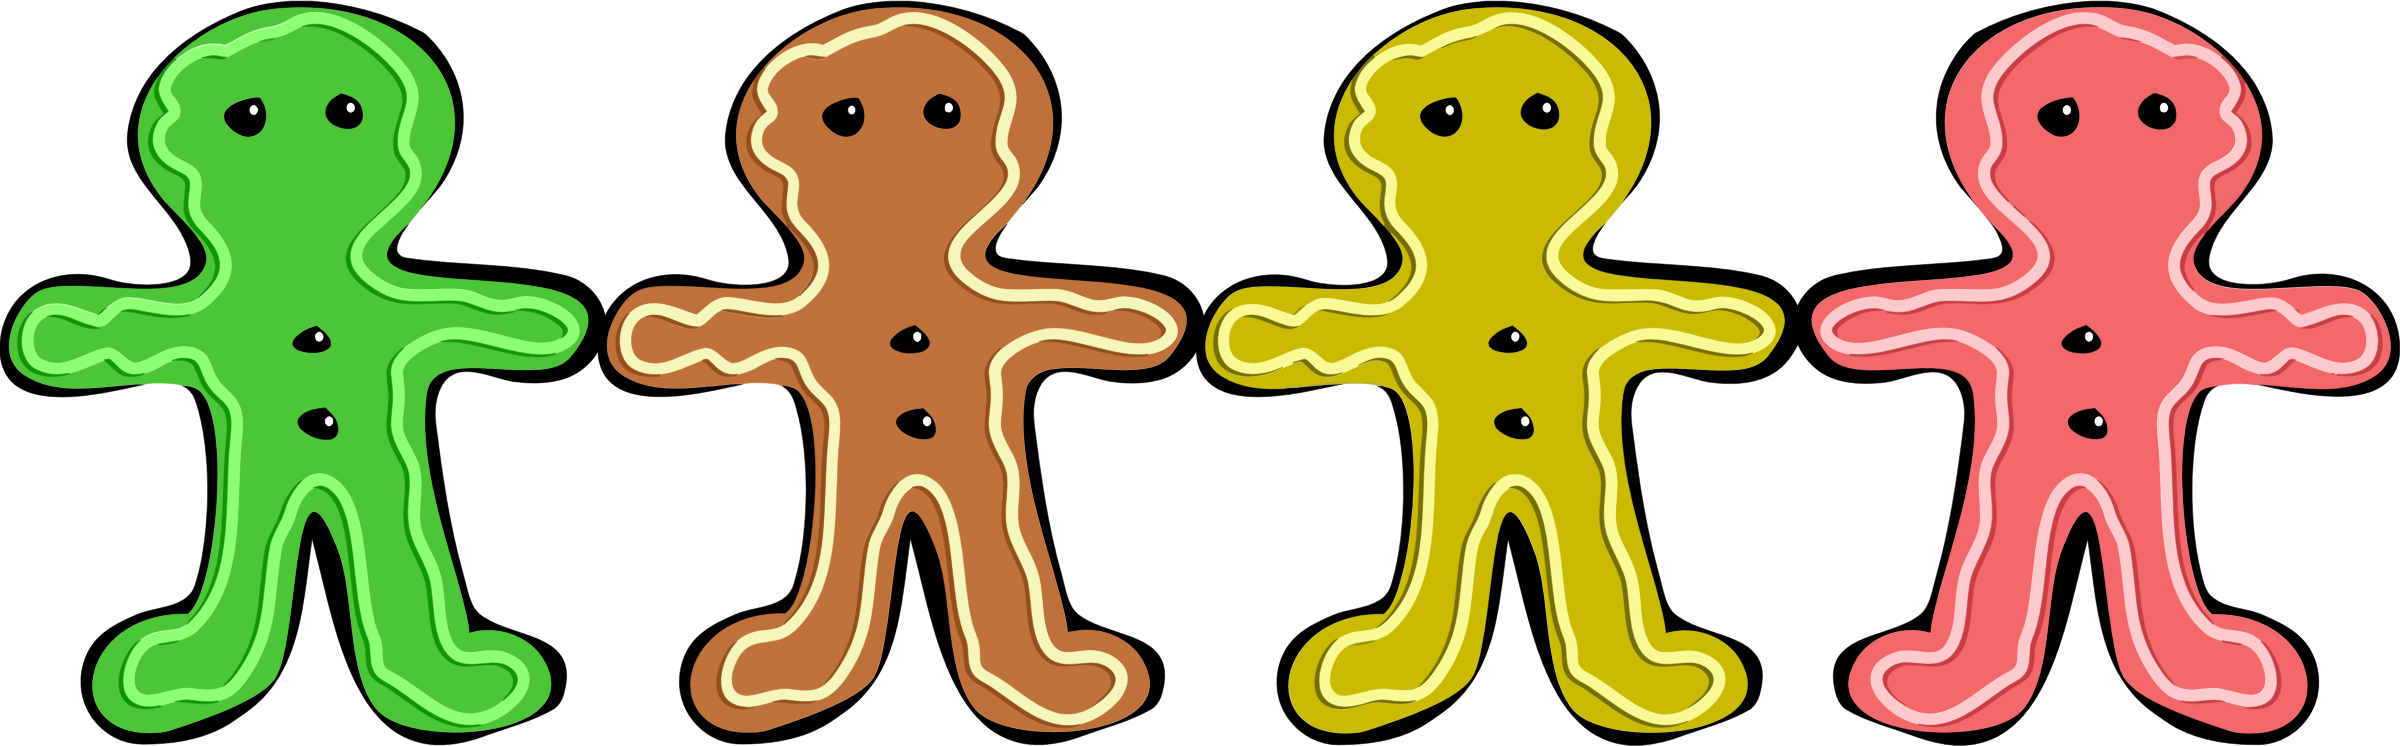 Colorful Gingerbread Men by GDJ